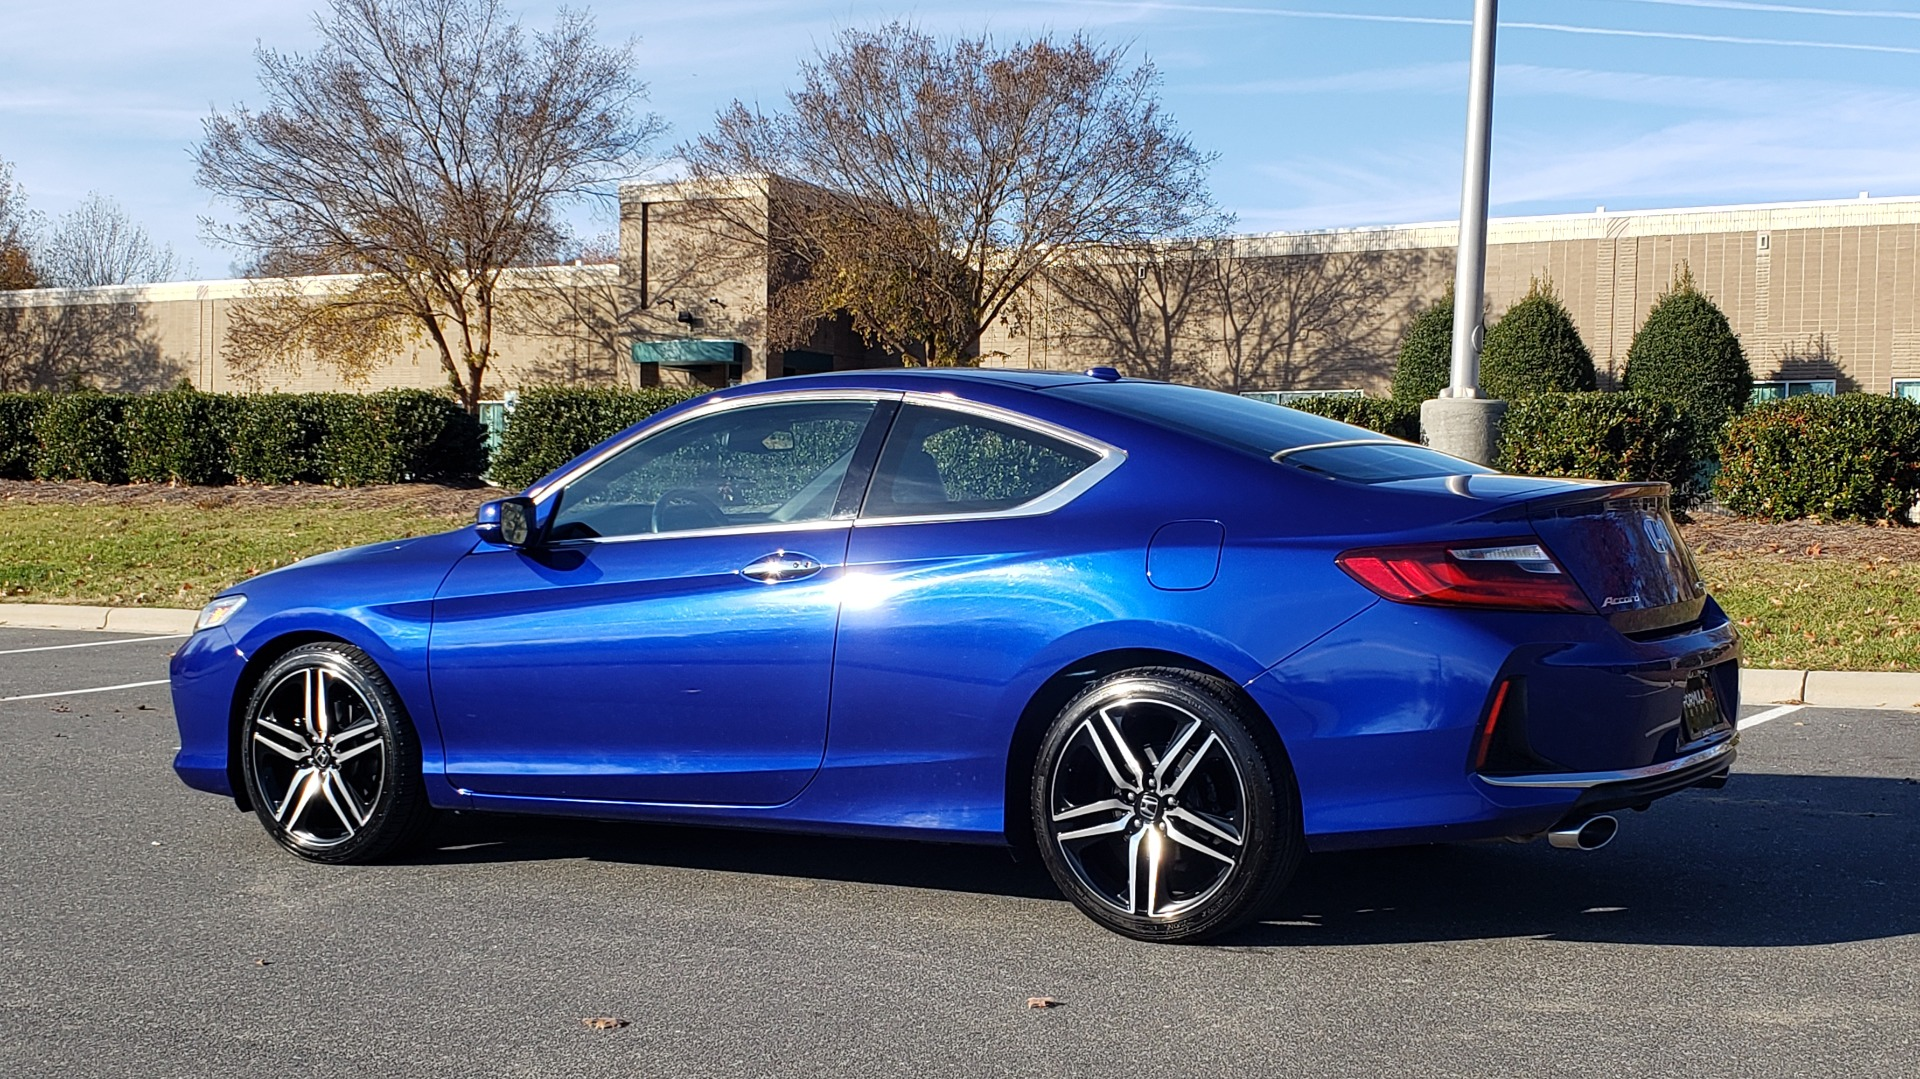 Used 2017 Honda ACCORD COUPE TOURING V6 / 2-DR / NAV / SUNROOF / LANEWATCH / CMBS for sale Sold at Formula Imports in Charlotte NC 28227 4